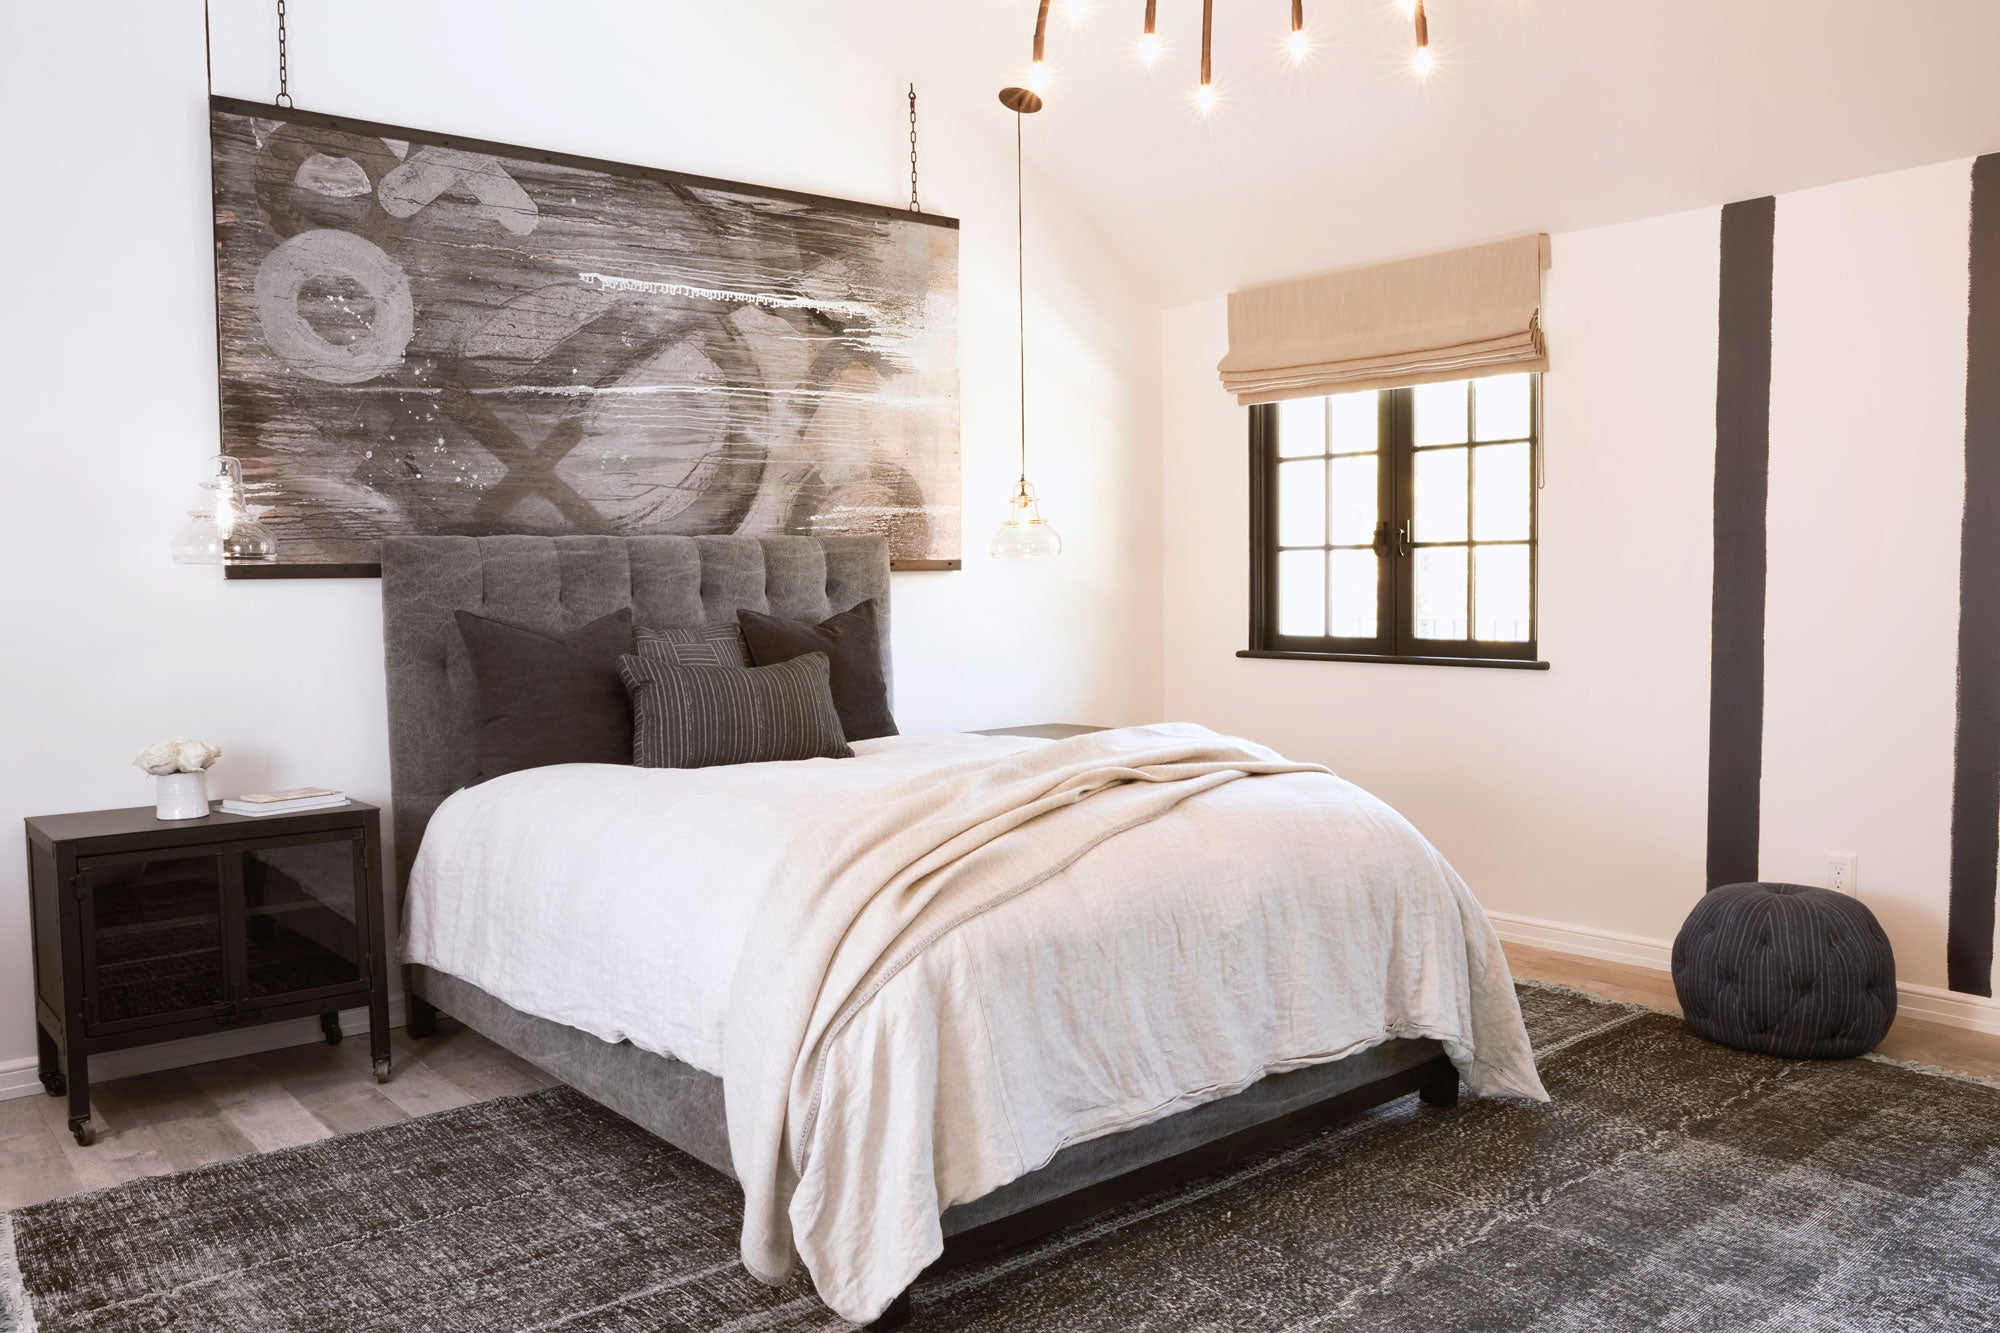 bed in light filled room and pendant glass lighting